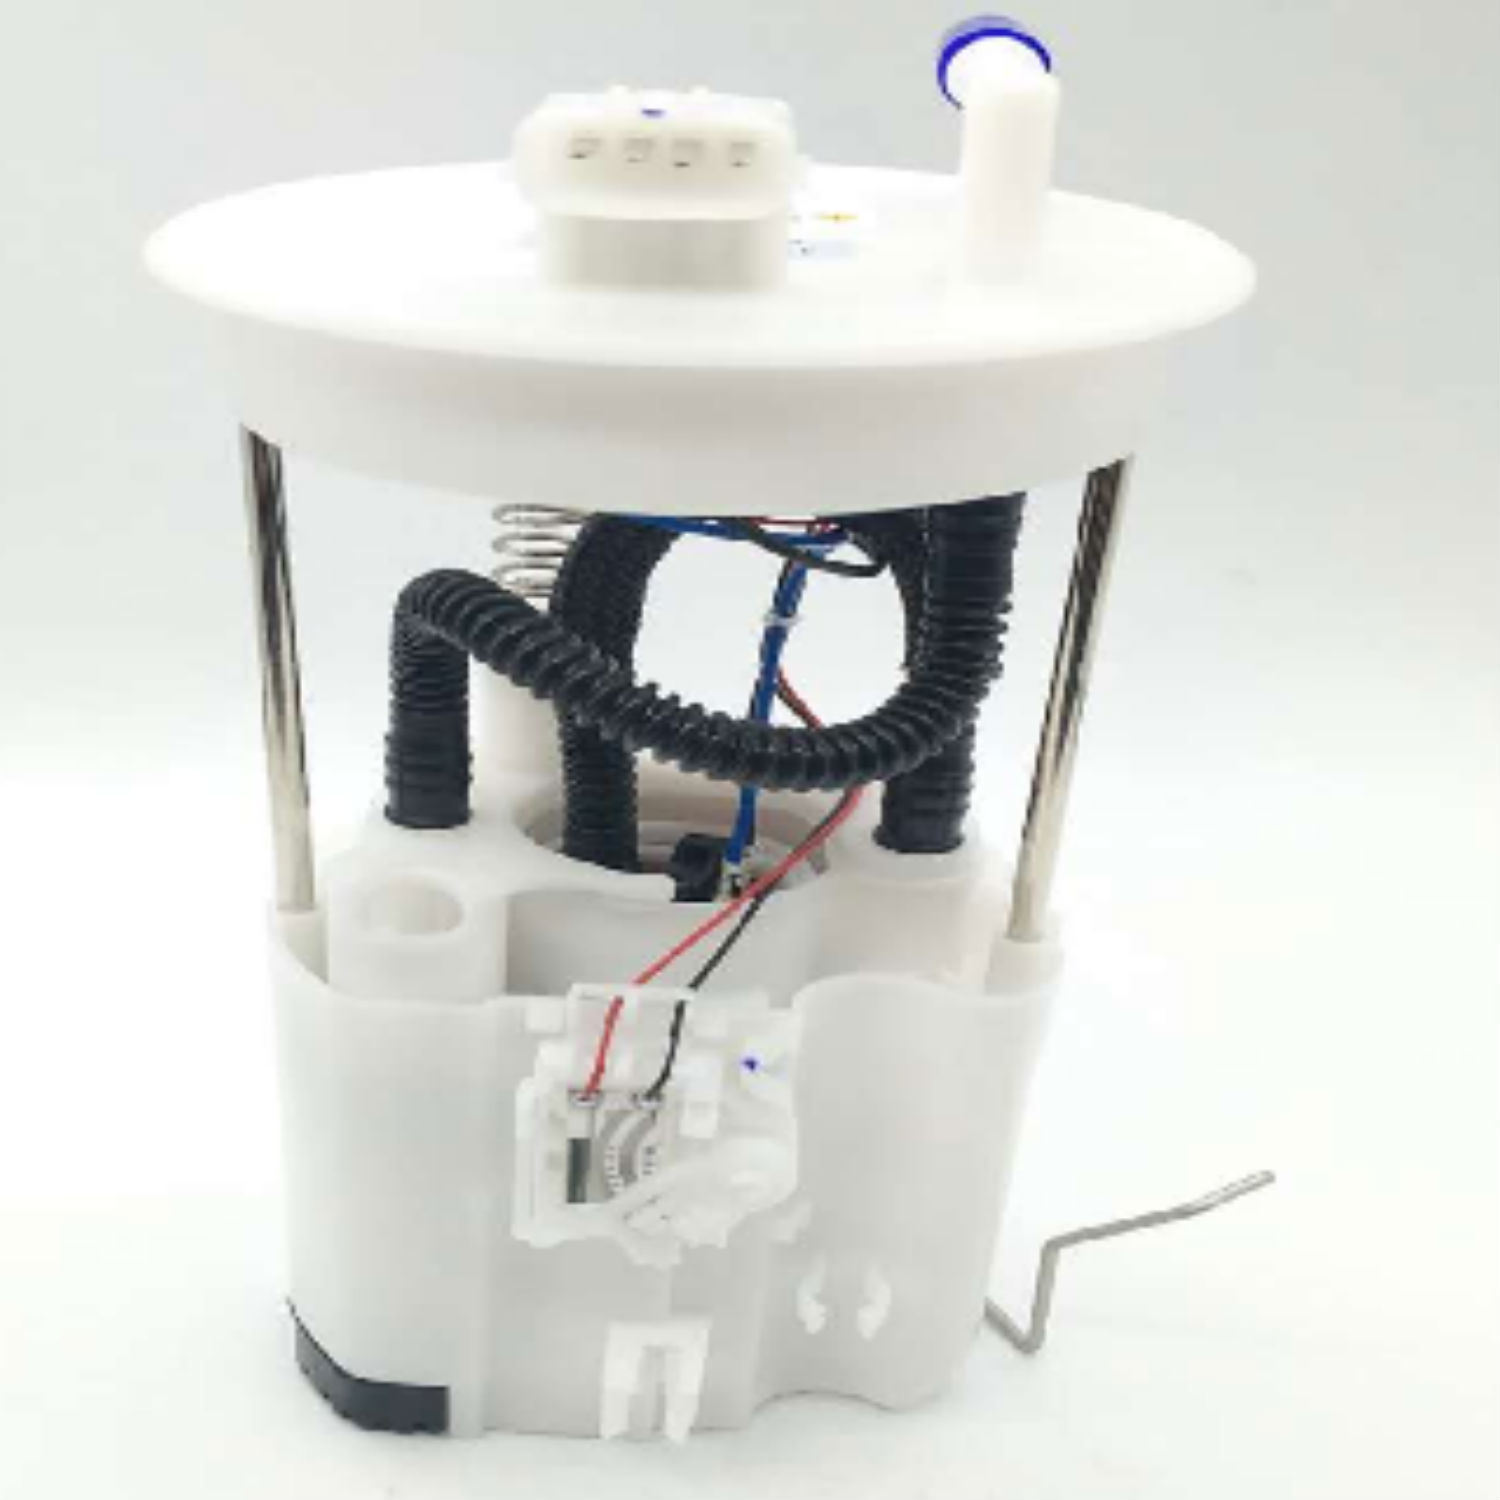 hight resolution of the fule pump assembly electronic fuel pump 17040 we800 nissan versa tiida xuanyi livina